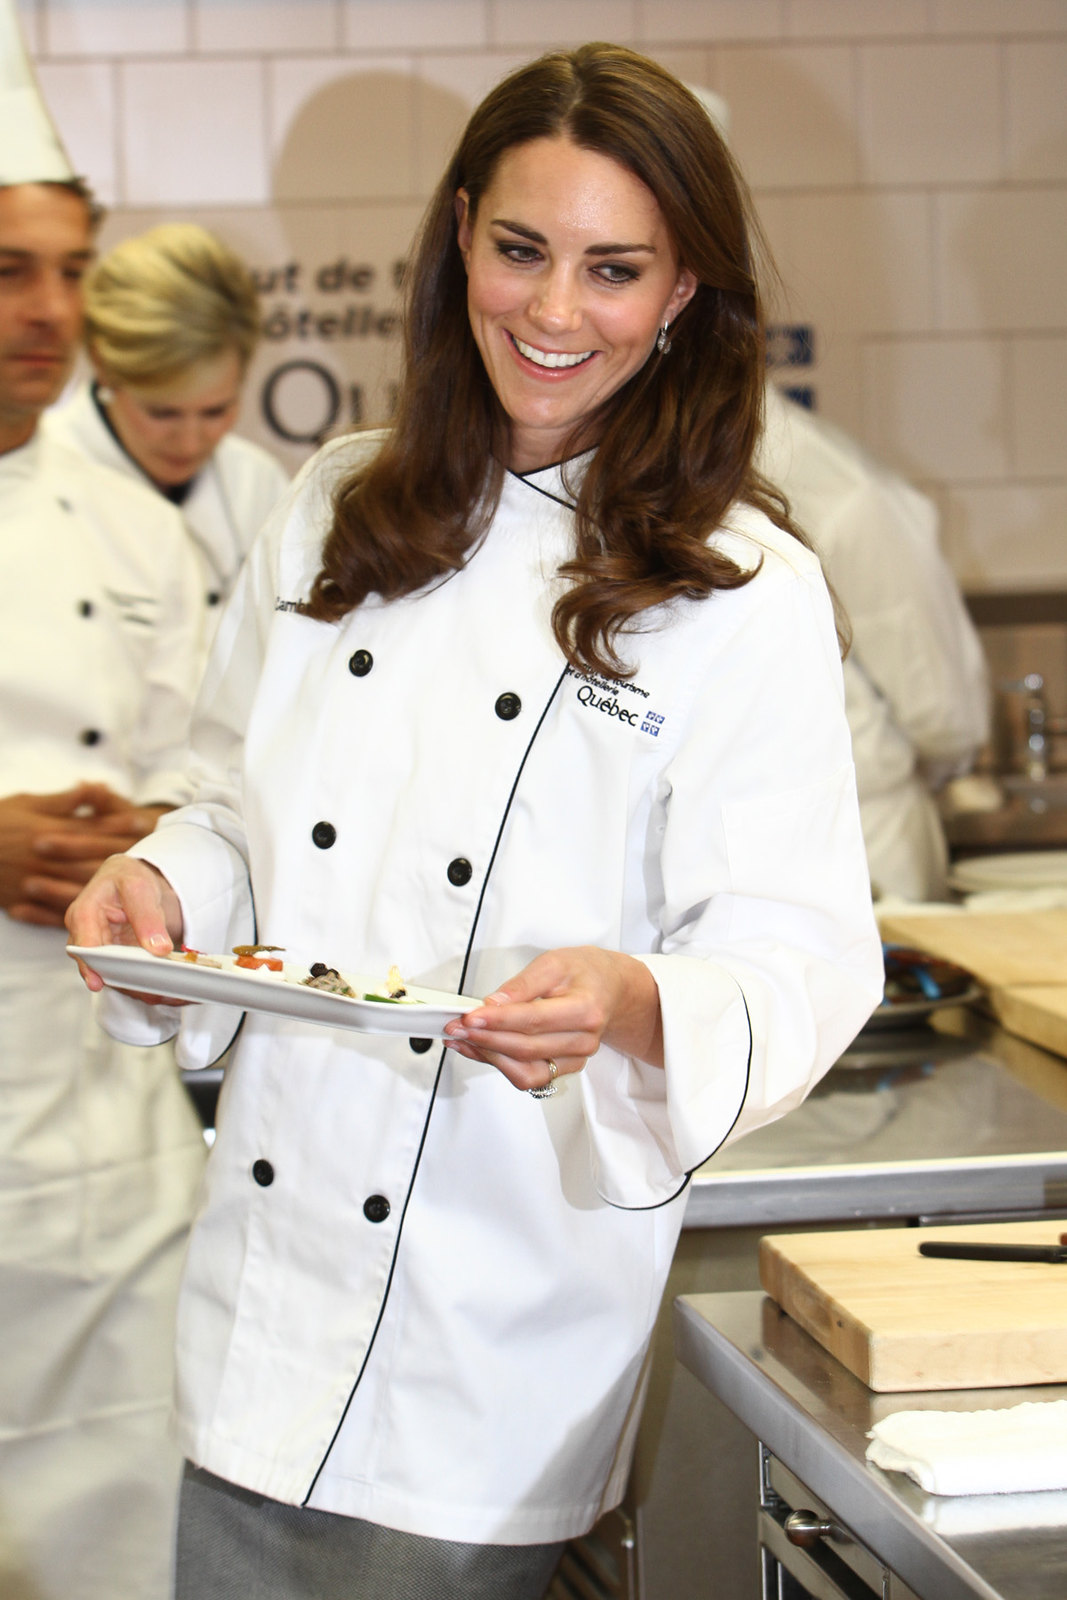 The Duchess of cambridge showed off her culinary during Montreal visit in 2011